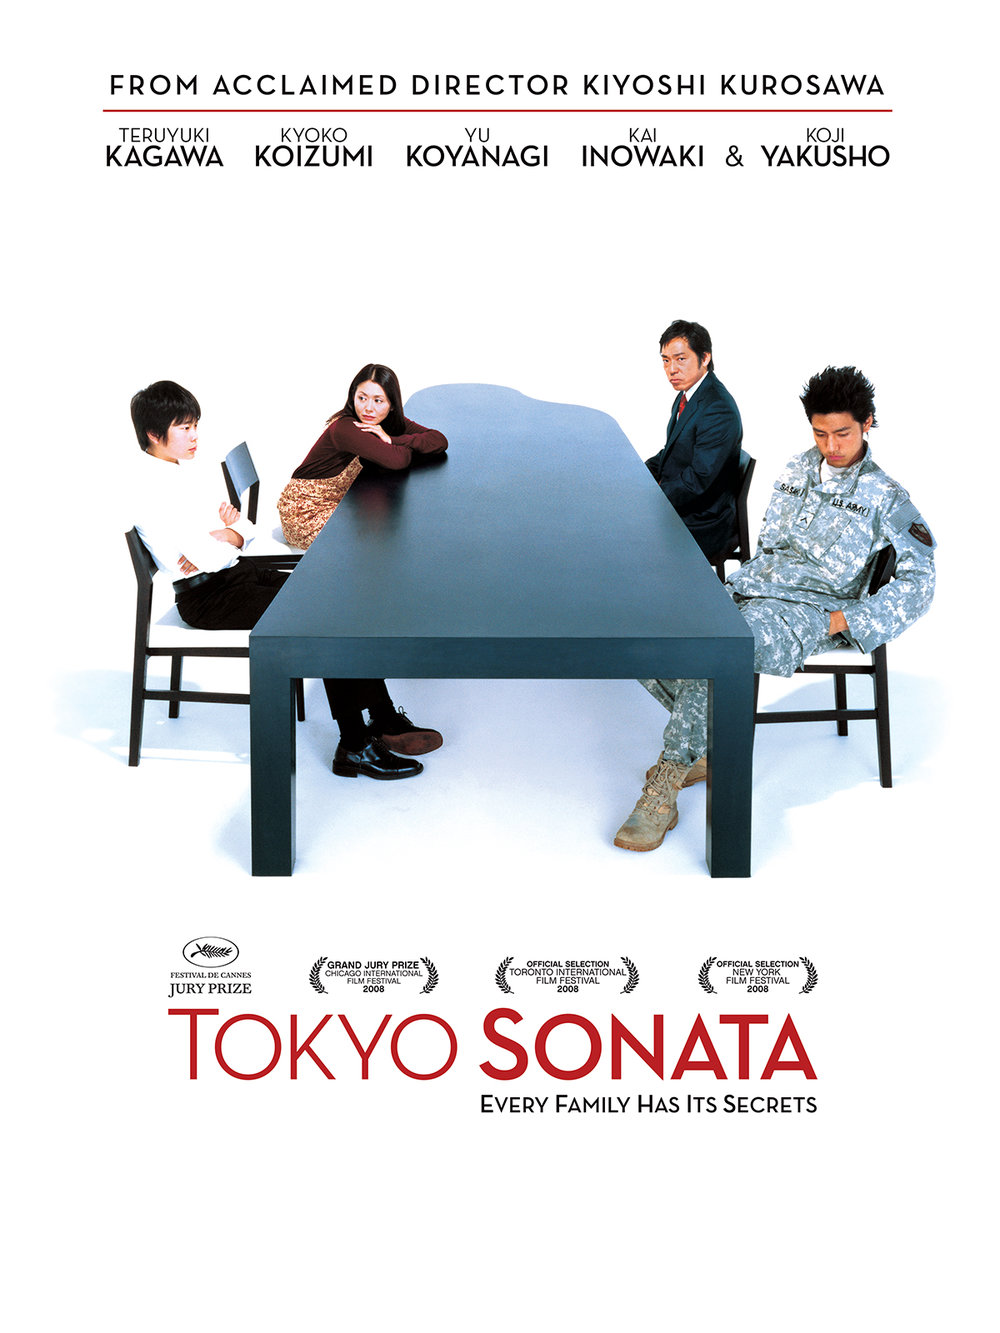 Here-TokyoSonata-Full-Image-en-US.jpg